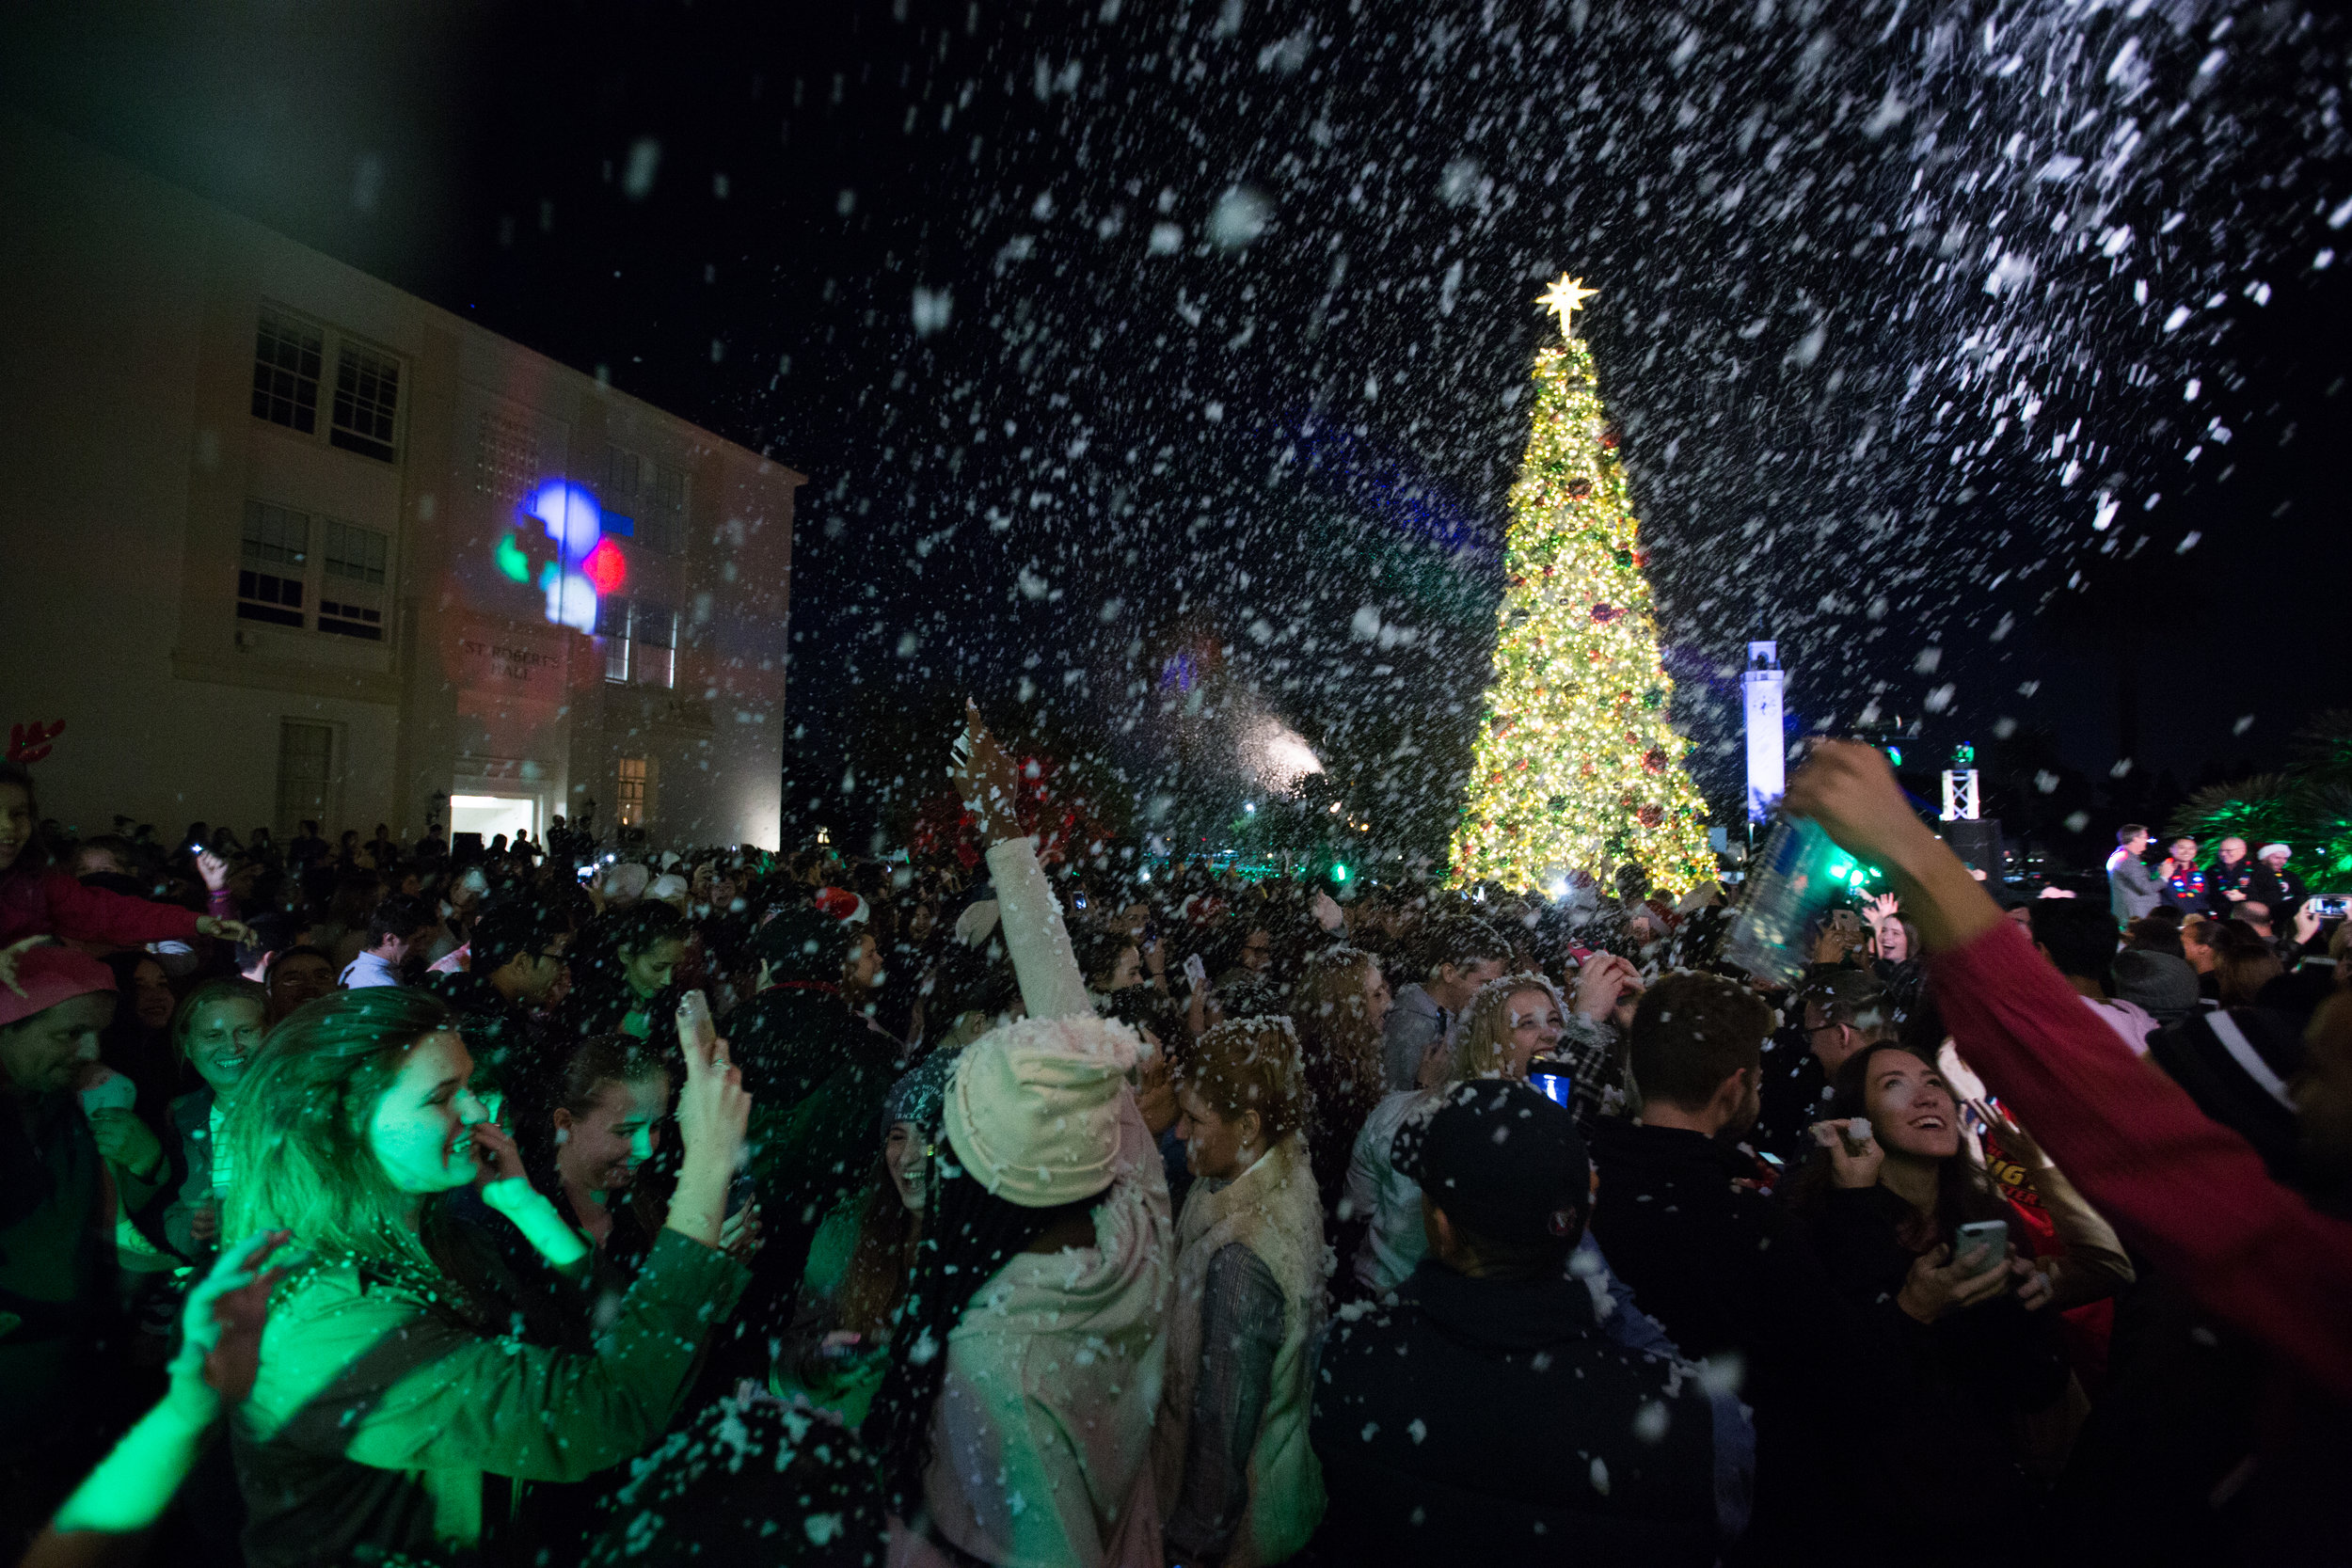 Christmas at Loyola Marymount University in Los Angeles, CA (photo by Ravi Ranatunga for Loyola Marymount University)